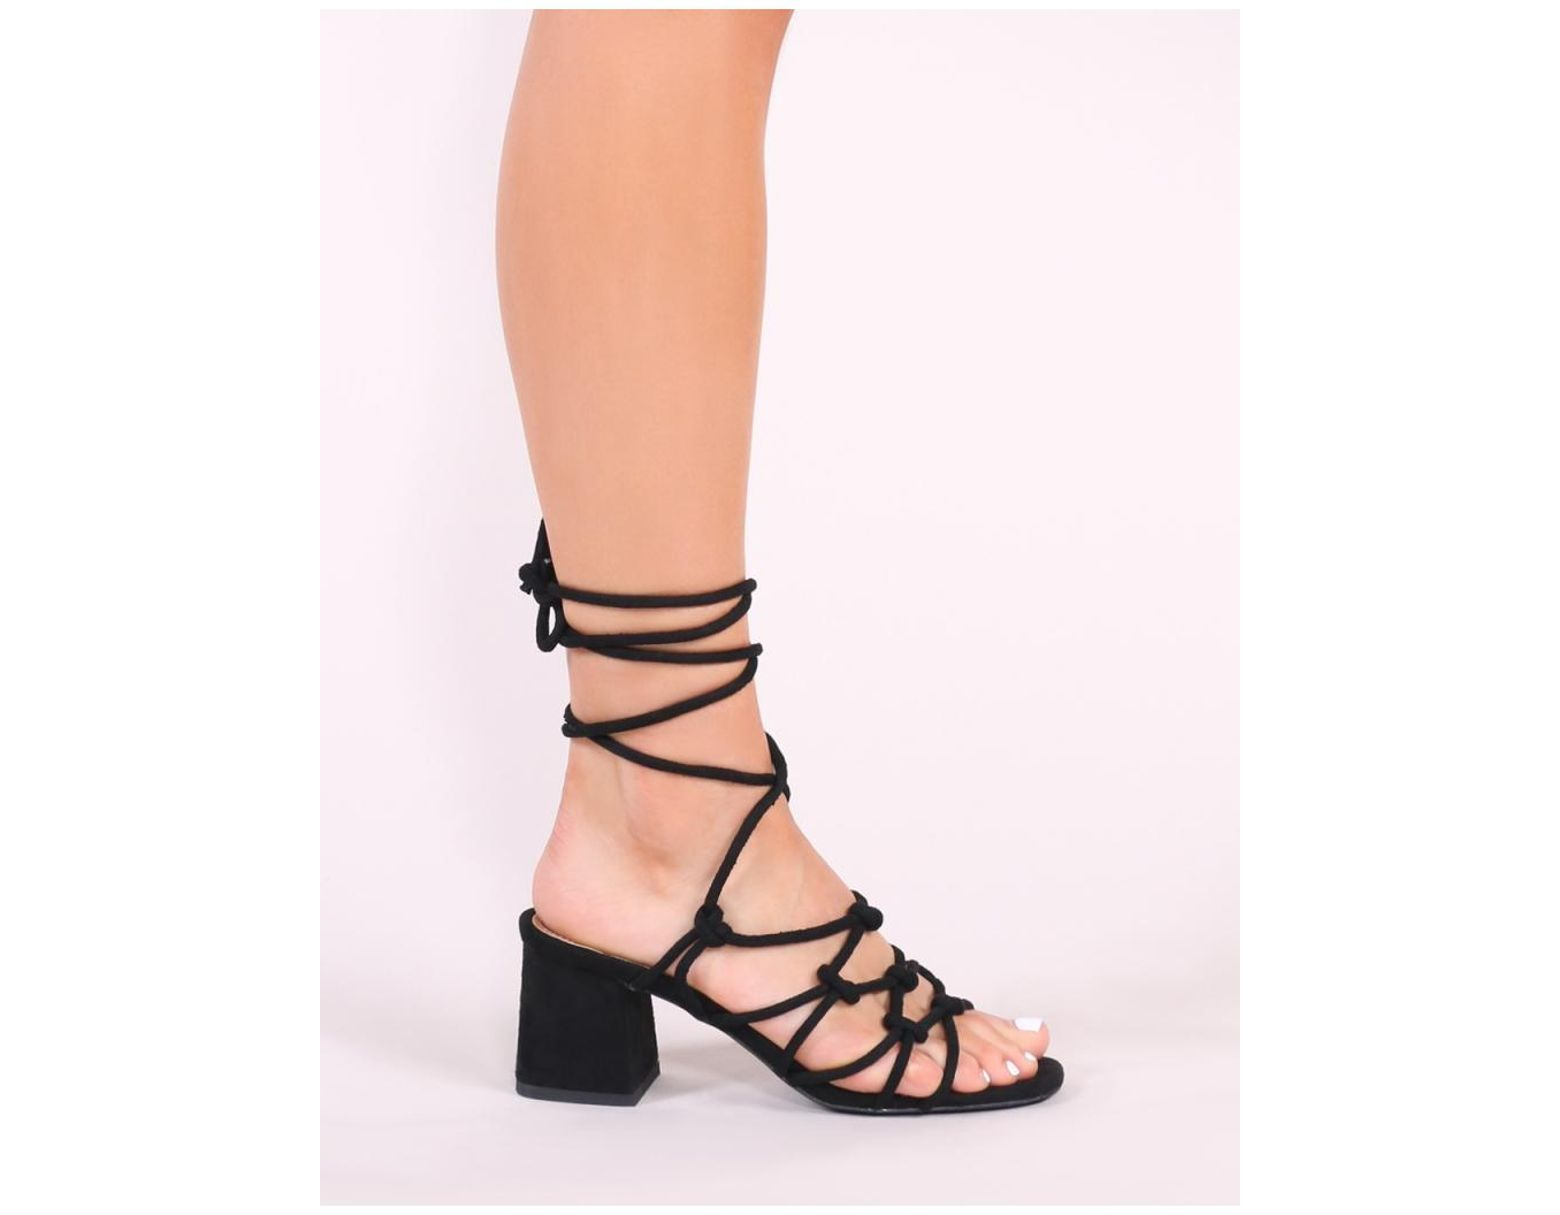 aeacf597ff4e Lyst - Public Desire Freya Knotted Strappy Block Heeled Sandals In Black  Faux Suede in Black